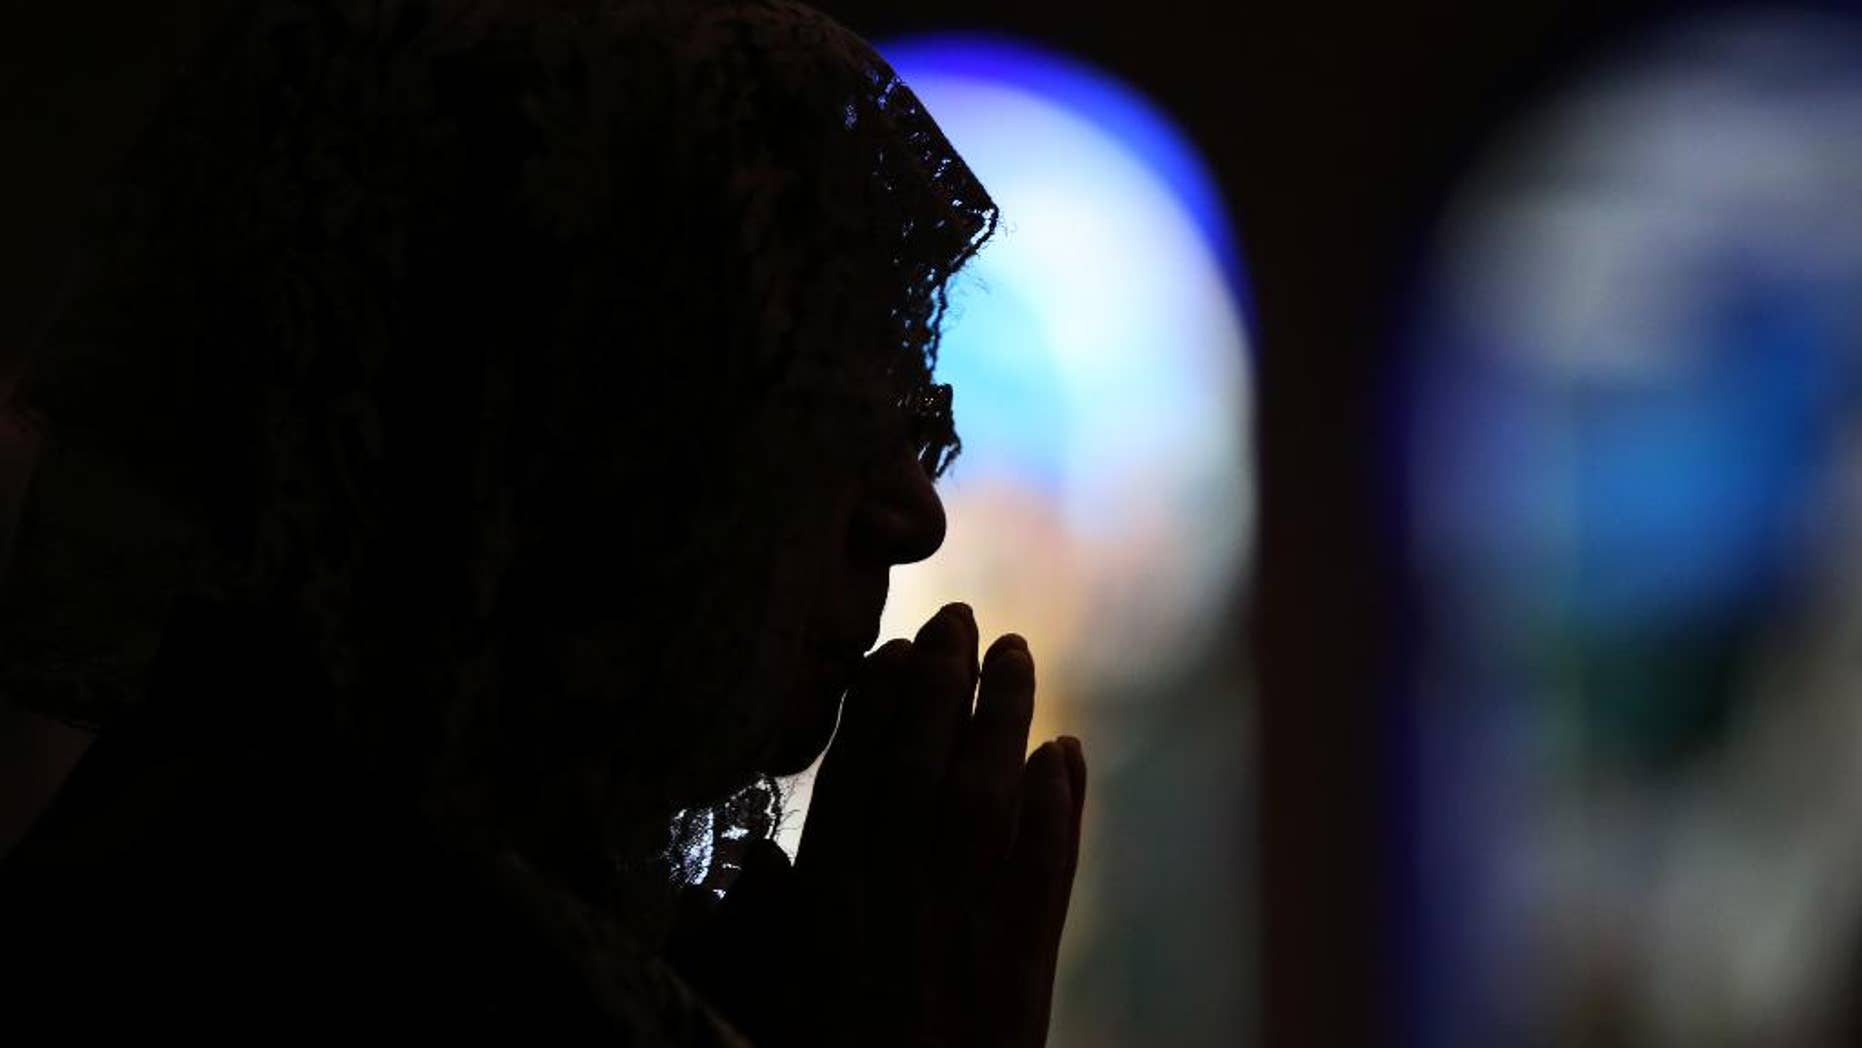 CORRECTS THE NUMBER OF THE VICTIMS- A Catholic offers prayers at an early morning mass to pay respect to the victims of the Nagasaki atomic bombing at the Urakami Cathedral in Nagasaki, southern Japan Sunday, Aug. 9, 2015. Ceremony for the 70th anniversary of the atomic bombing will start late this morning. The atomic bomb attack on this city that left more than 70,000 dead and hastened the end of World War II exactly 70 years ago.(AP Photo/Eugene Hoshiko)